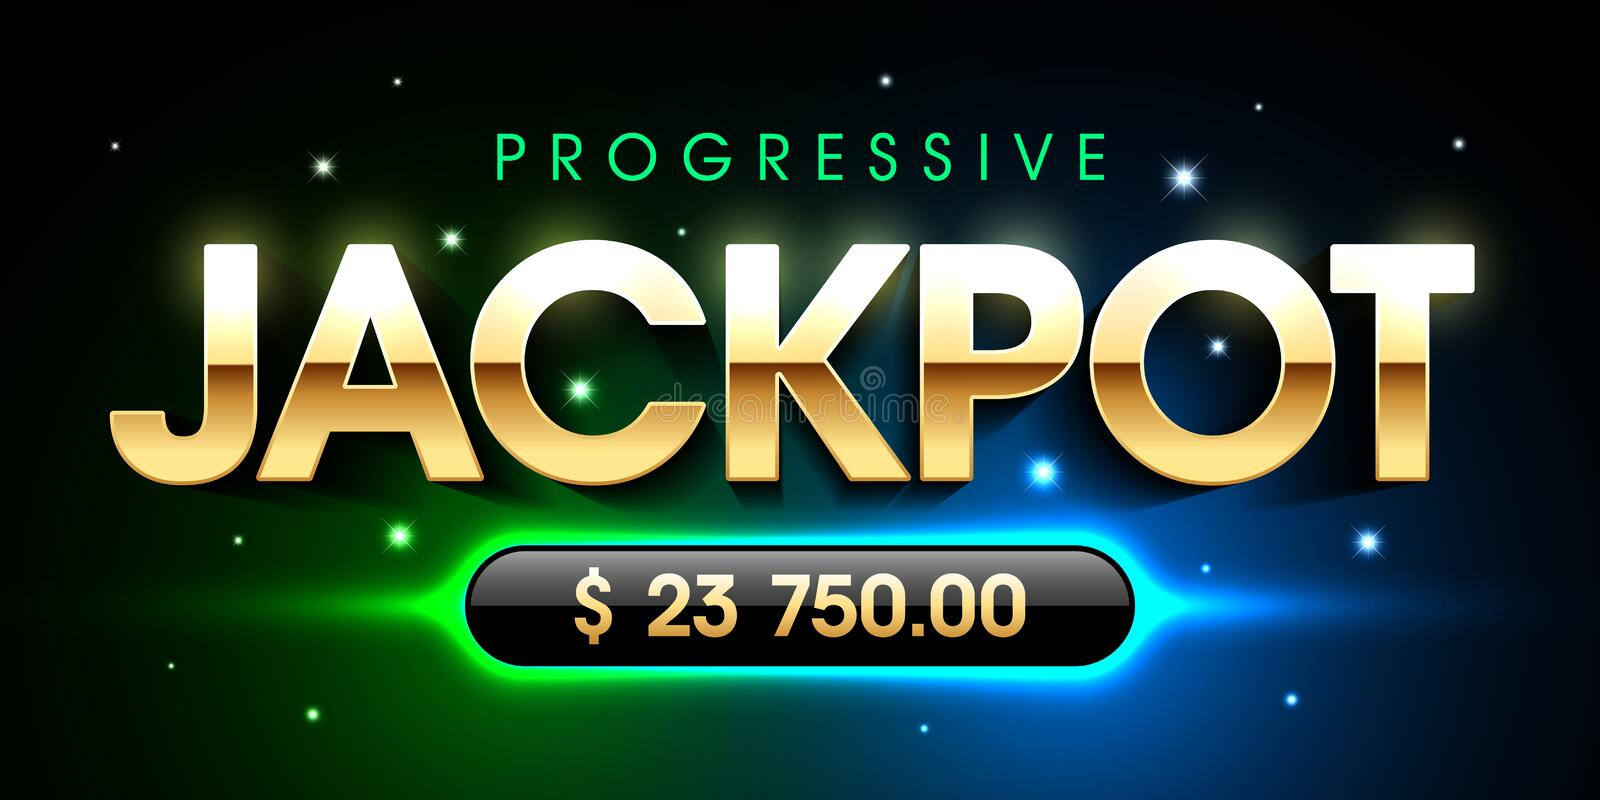 Progressive Jackpot vector illustration